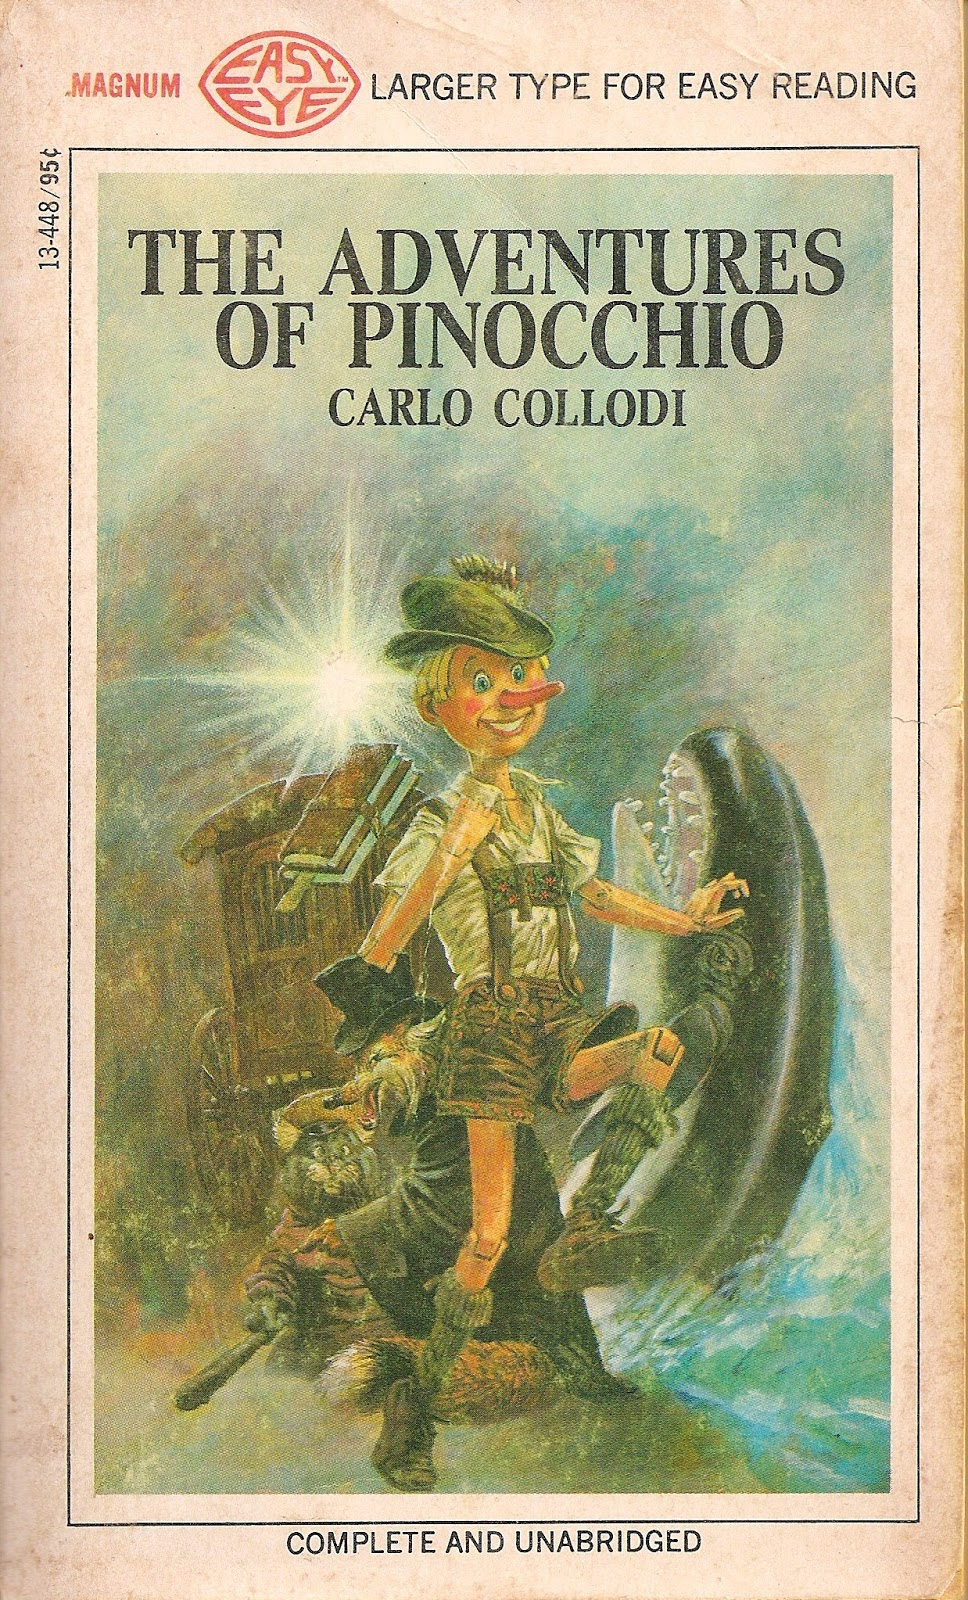 Magnum Easy Eye Books Blog: The Adventures Of Pinocchio